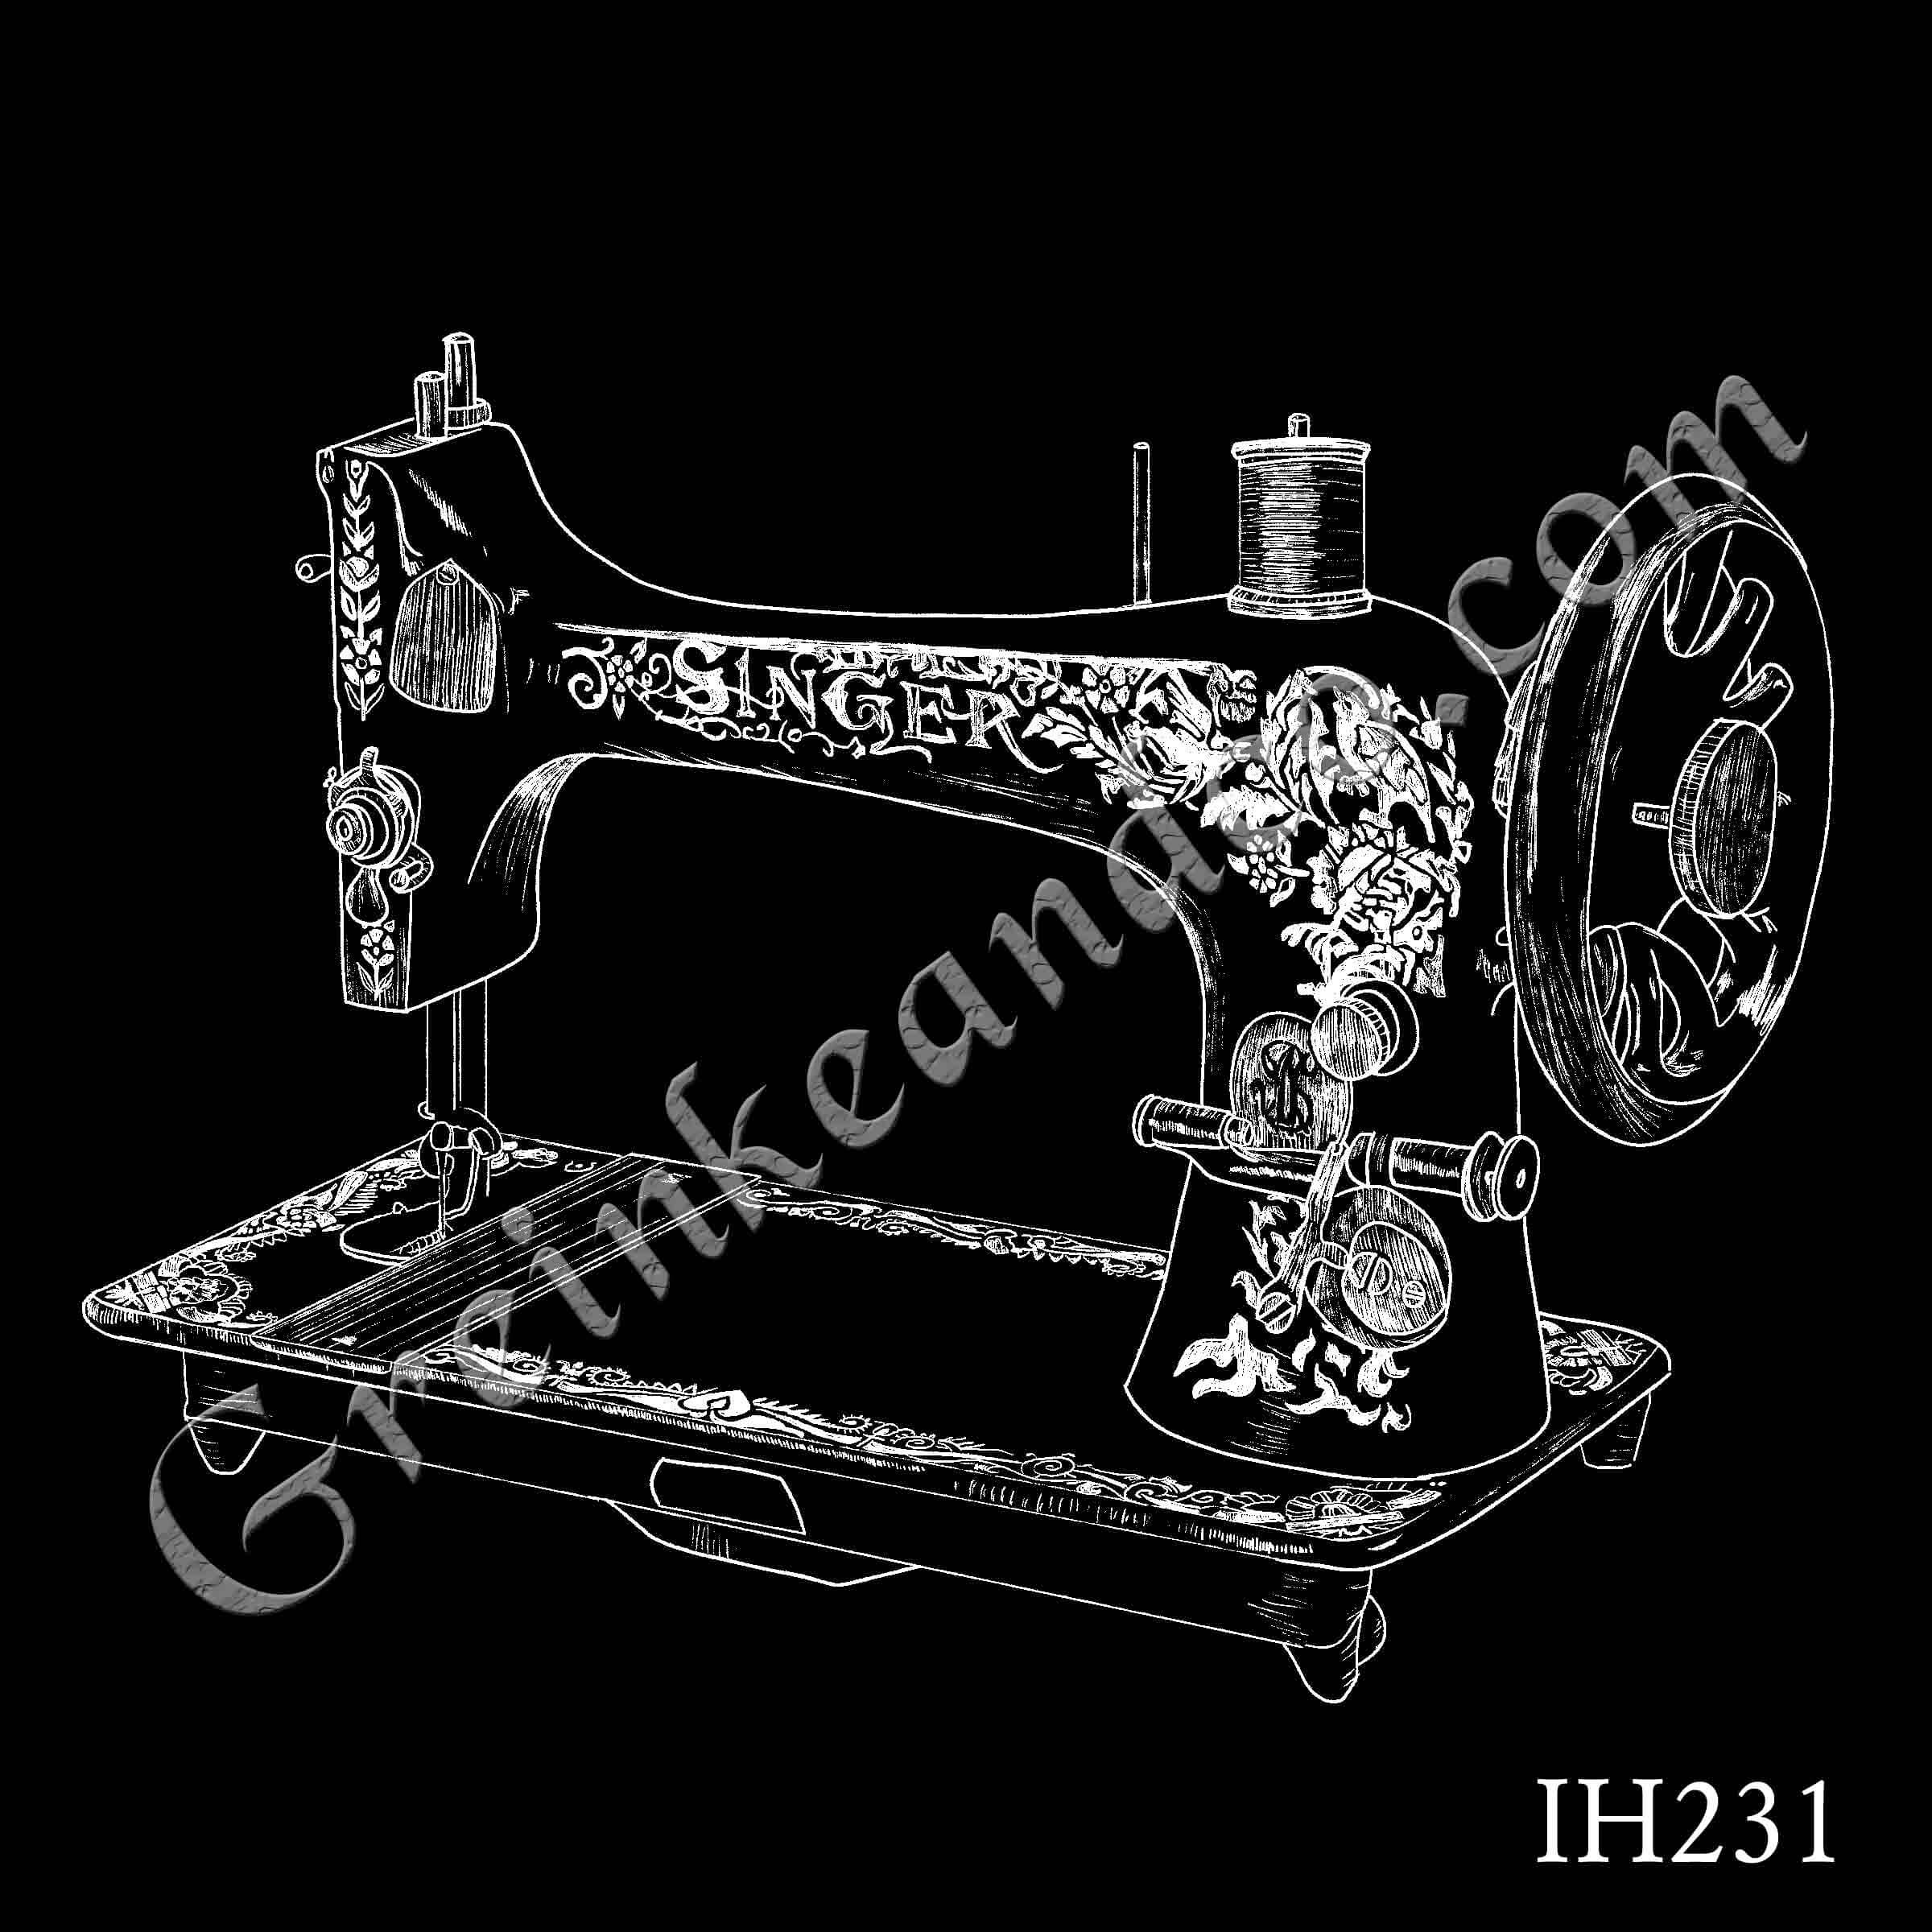 IH231 - Sewing Machine